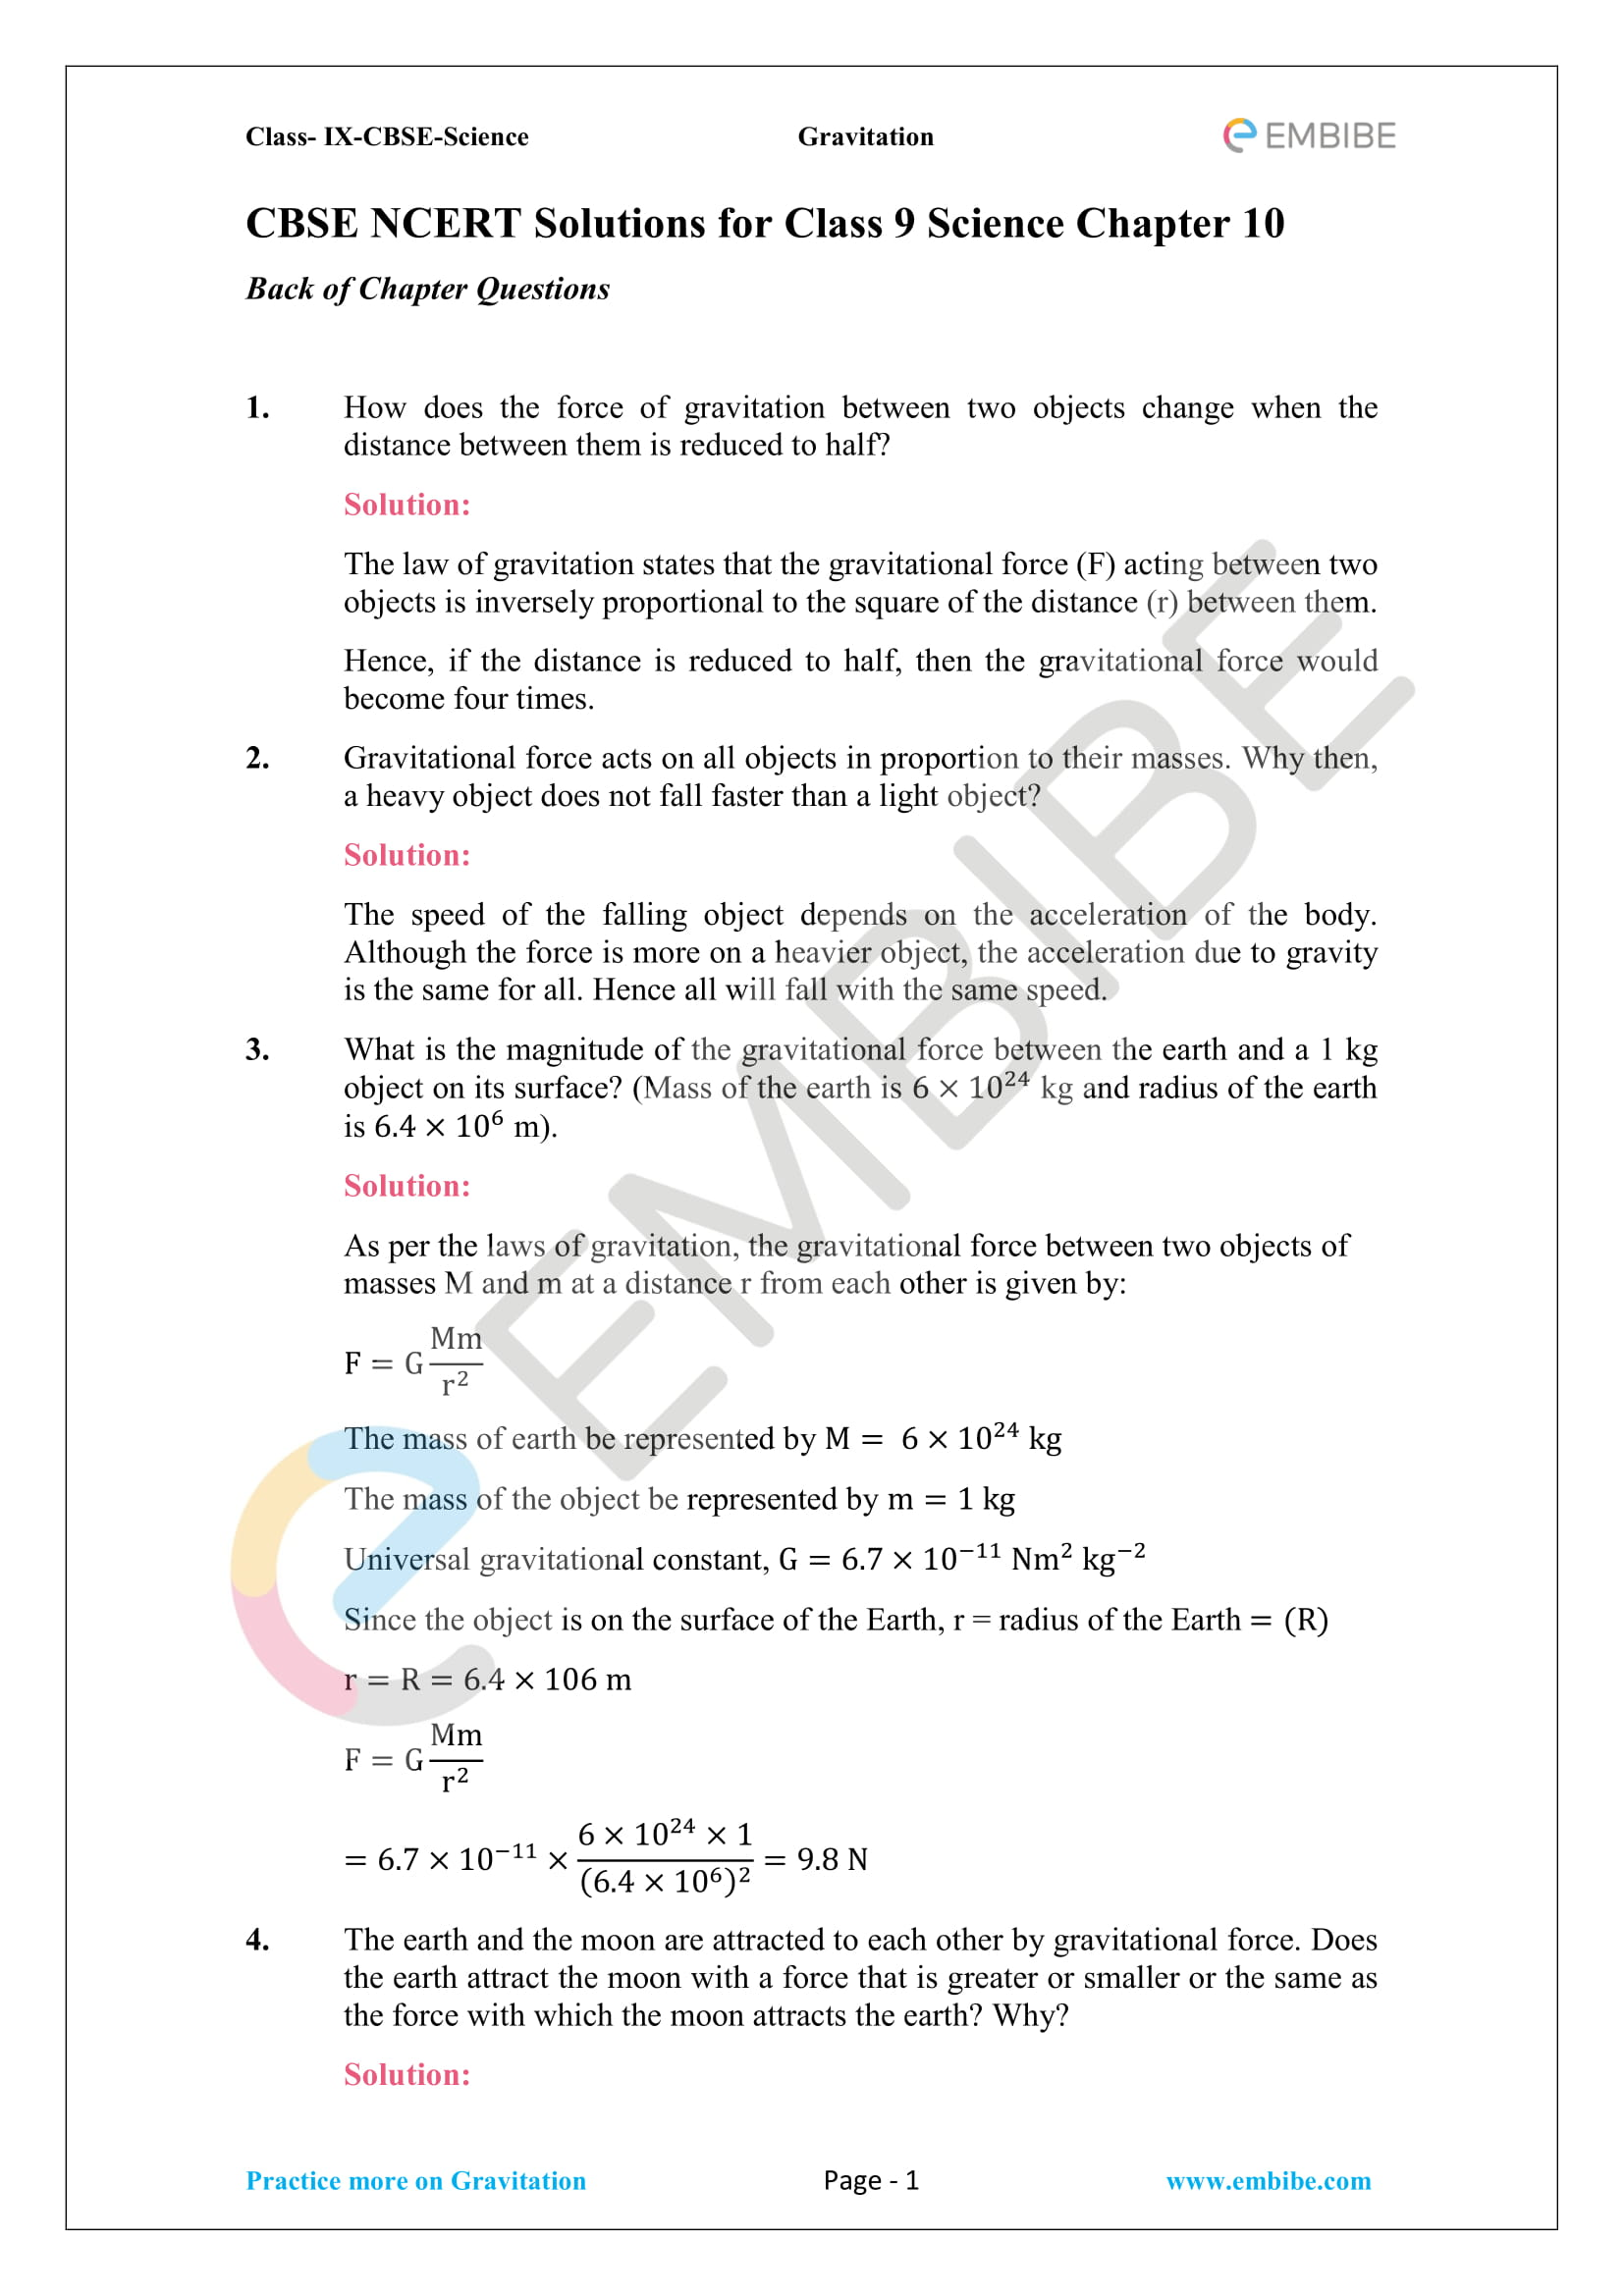 CBSE NCERT Solutions For Class 9 Science Chapter 10 – Gravitation - 1